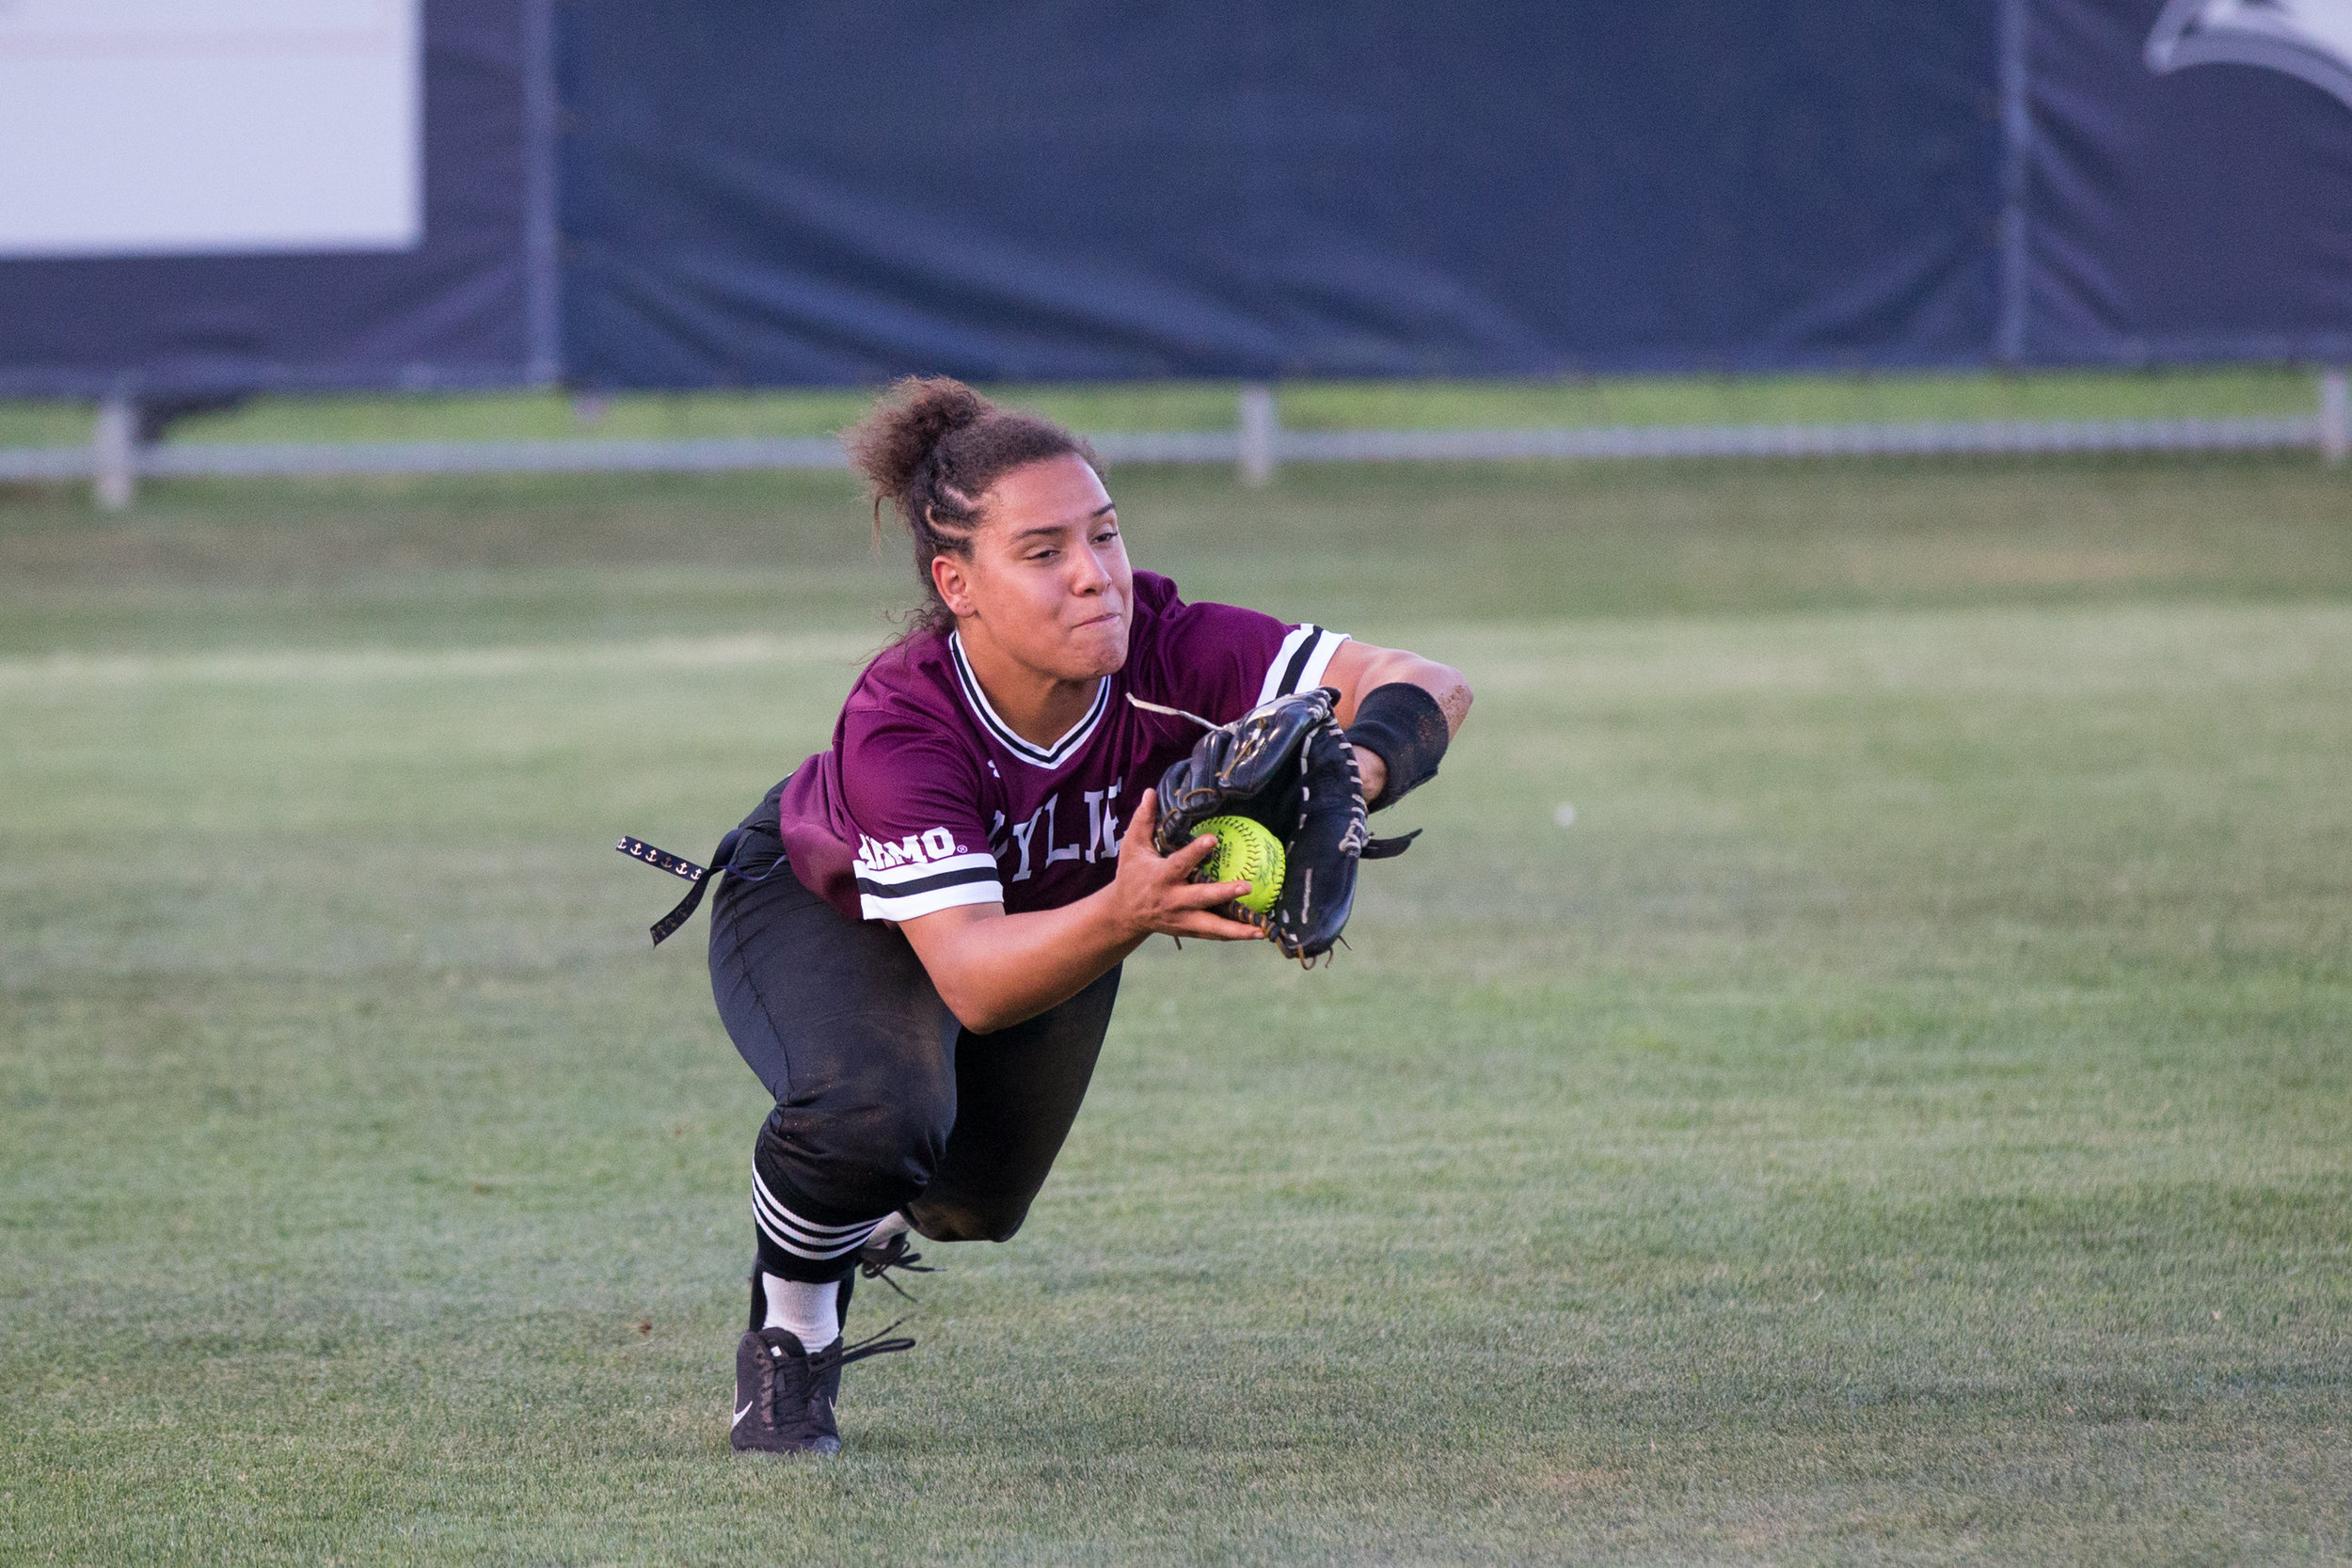 5_18 Wylie Softball-147.jpg